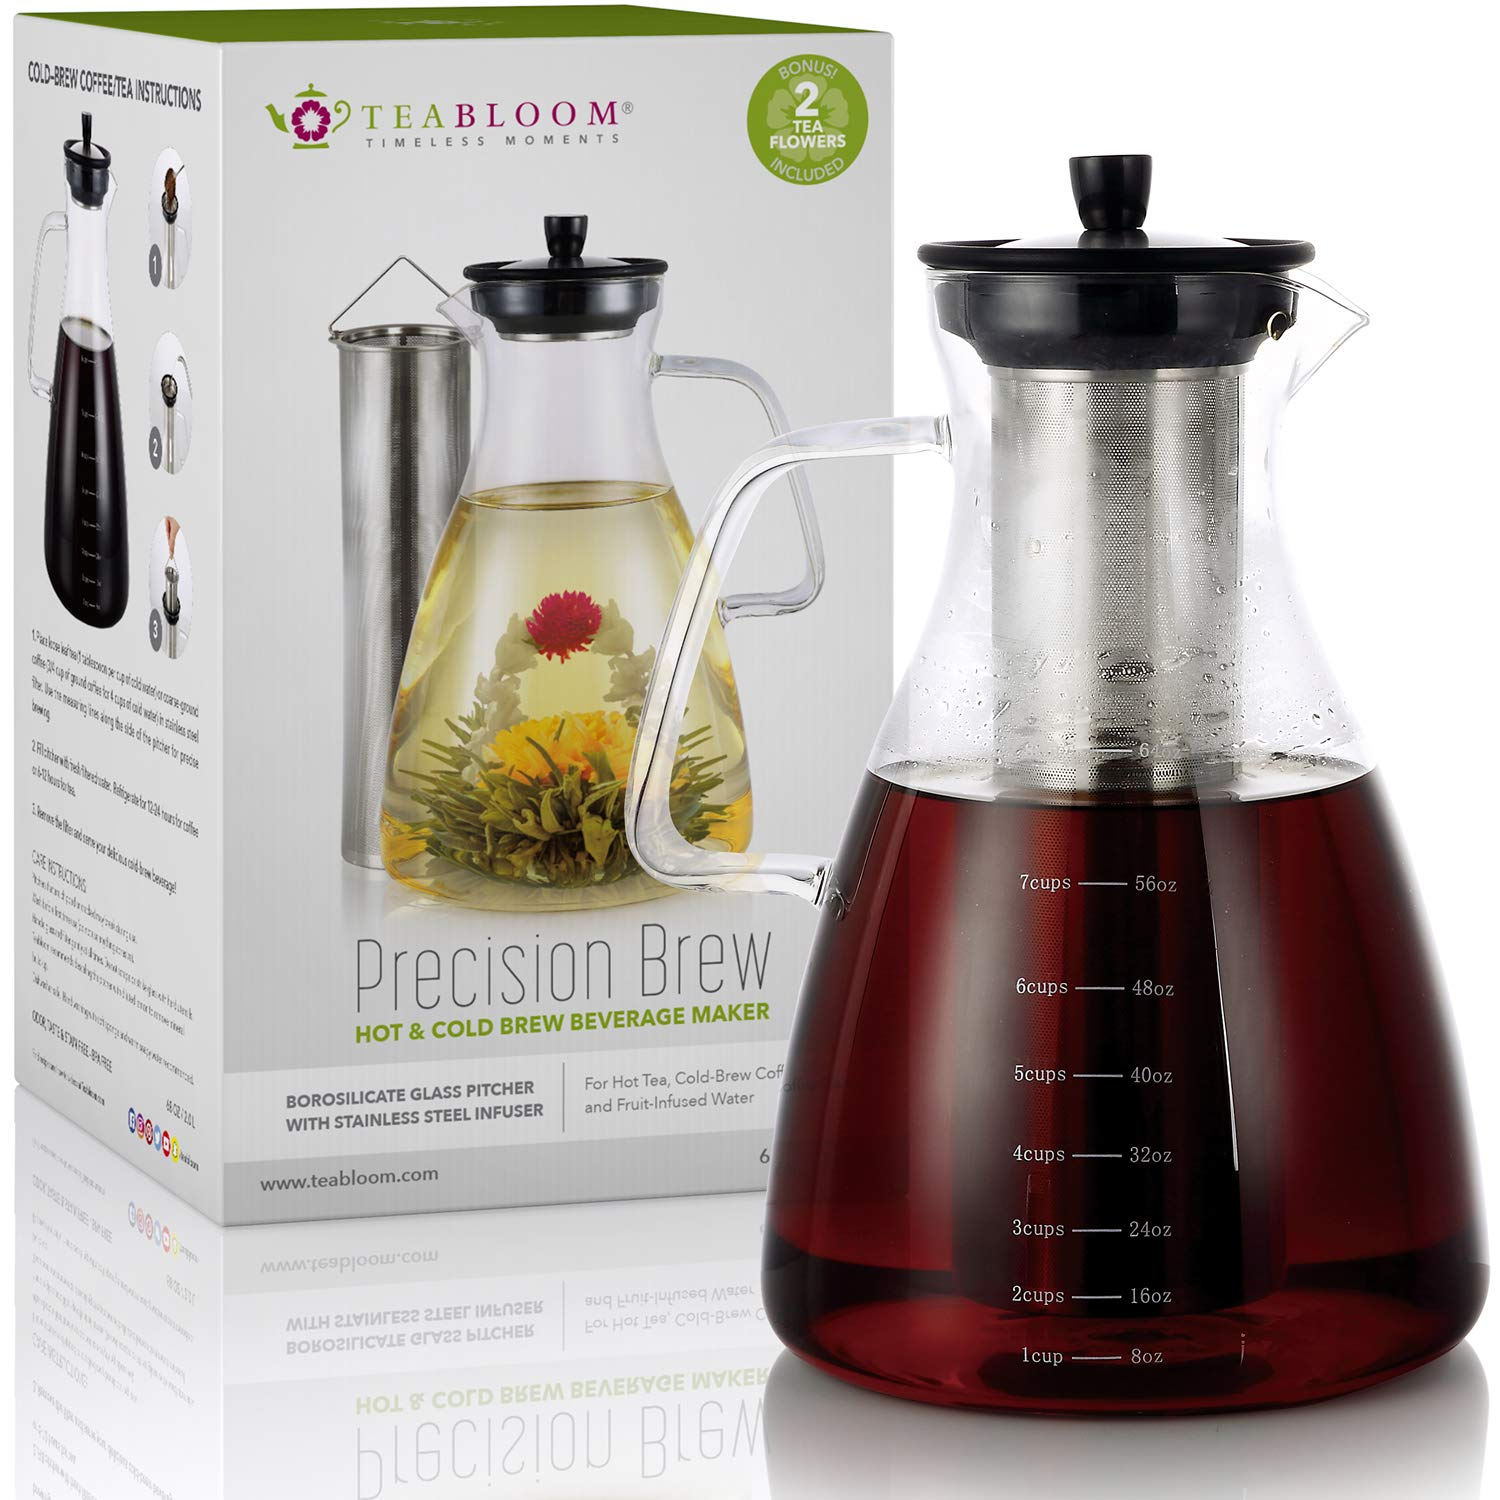 Teabloom Precision All-Brew Beverage Maker - Extra Large Stovetop Safe Glass Teapot / Coffee Maker - 68 OZ / 2.0 L - For Hot / Iced Tea, Cold Brew Coffee, & Fruit Infused Water - 2 Free Blooming Teas